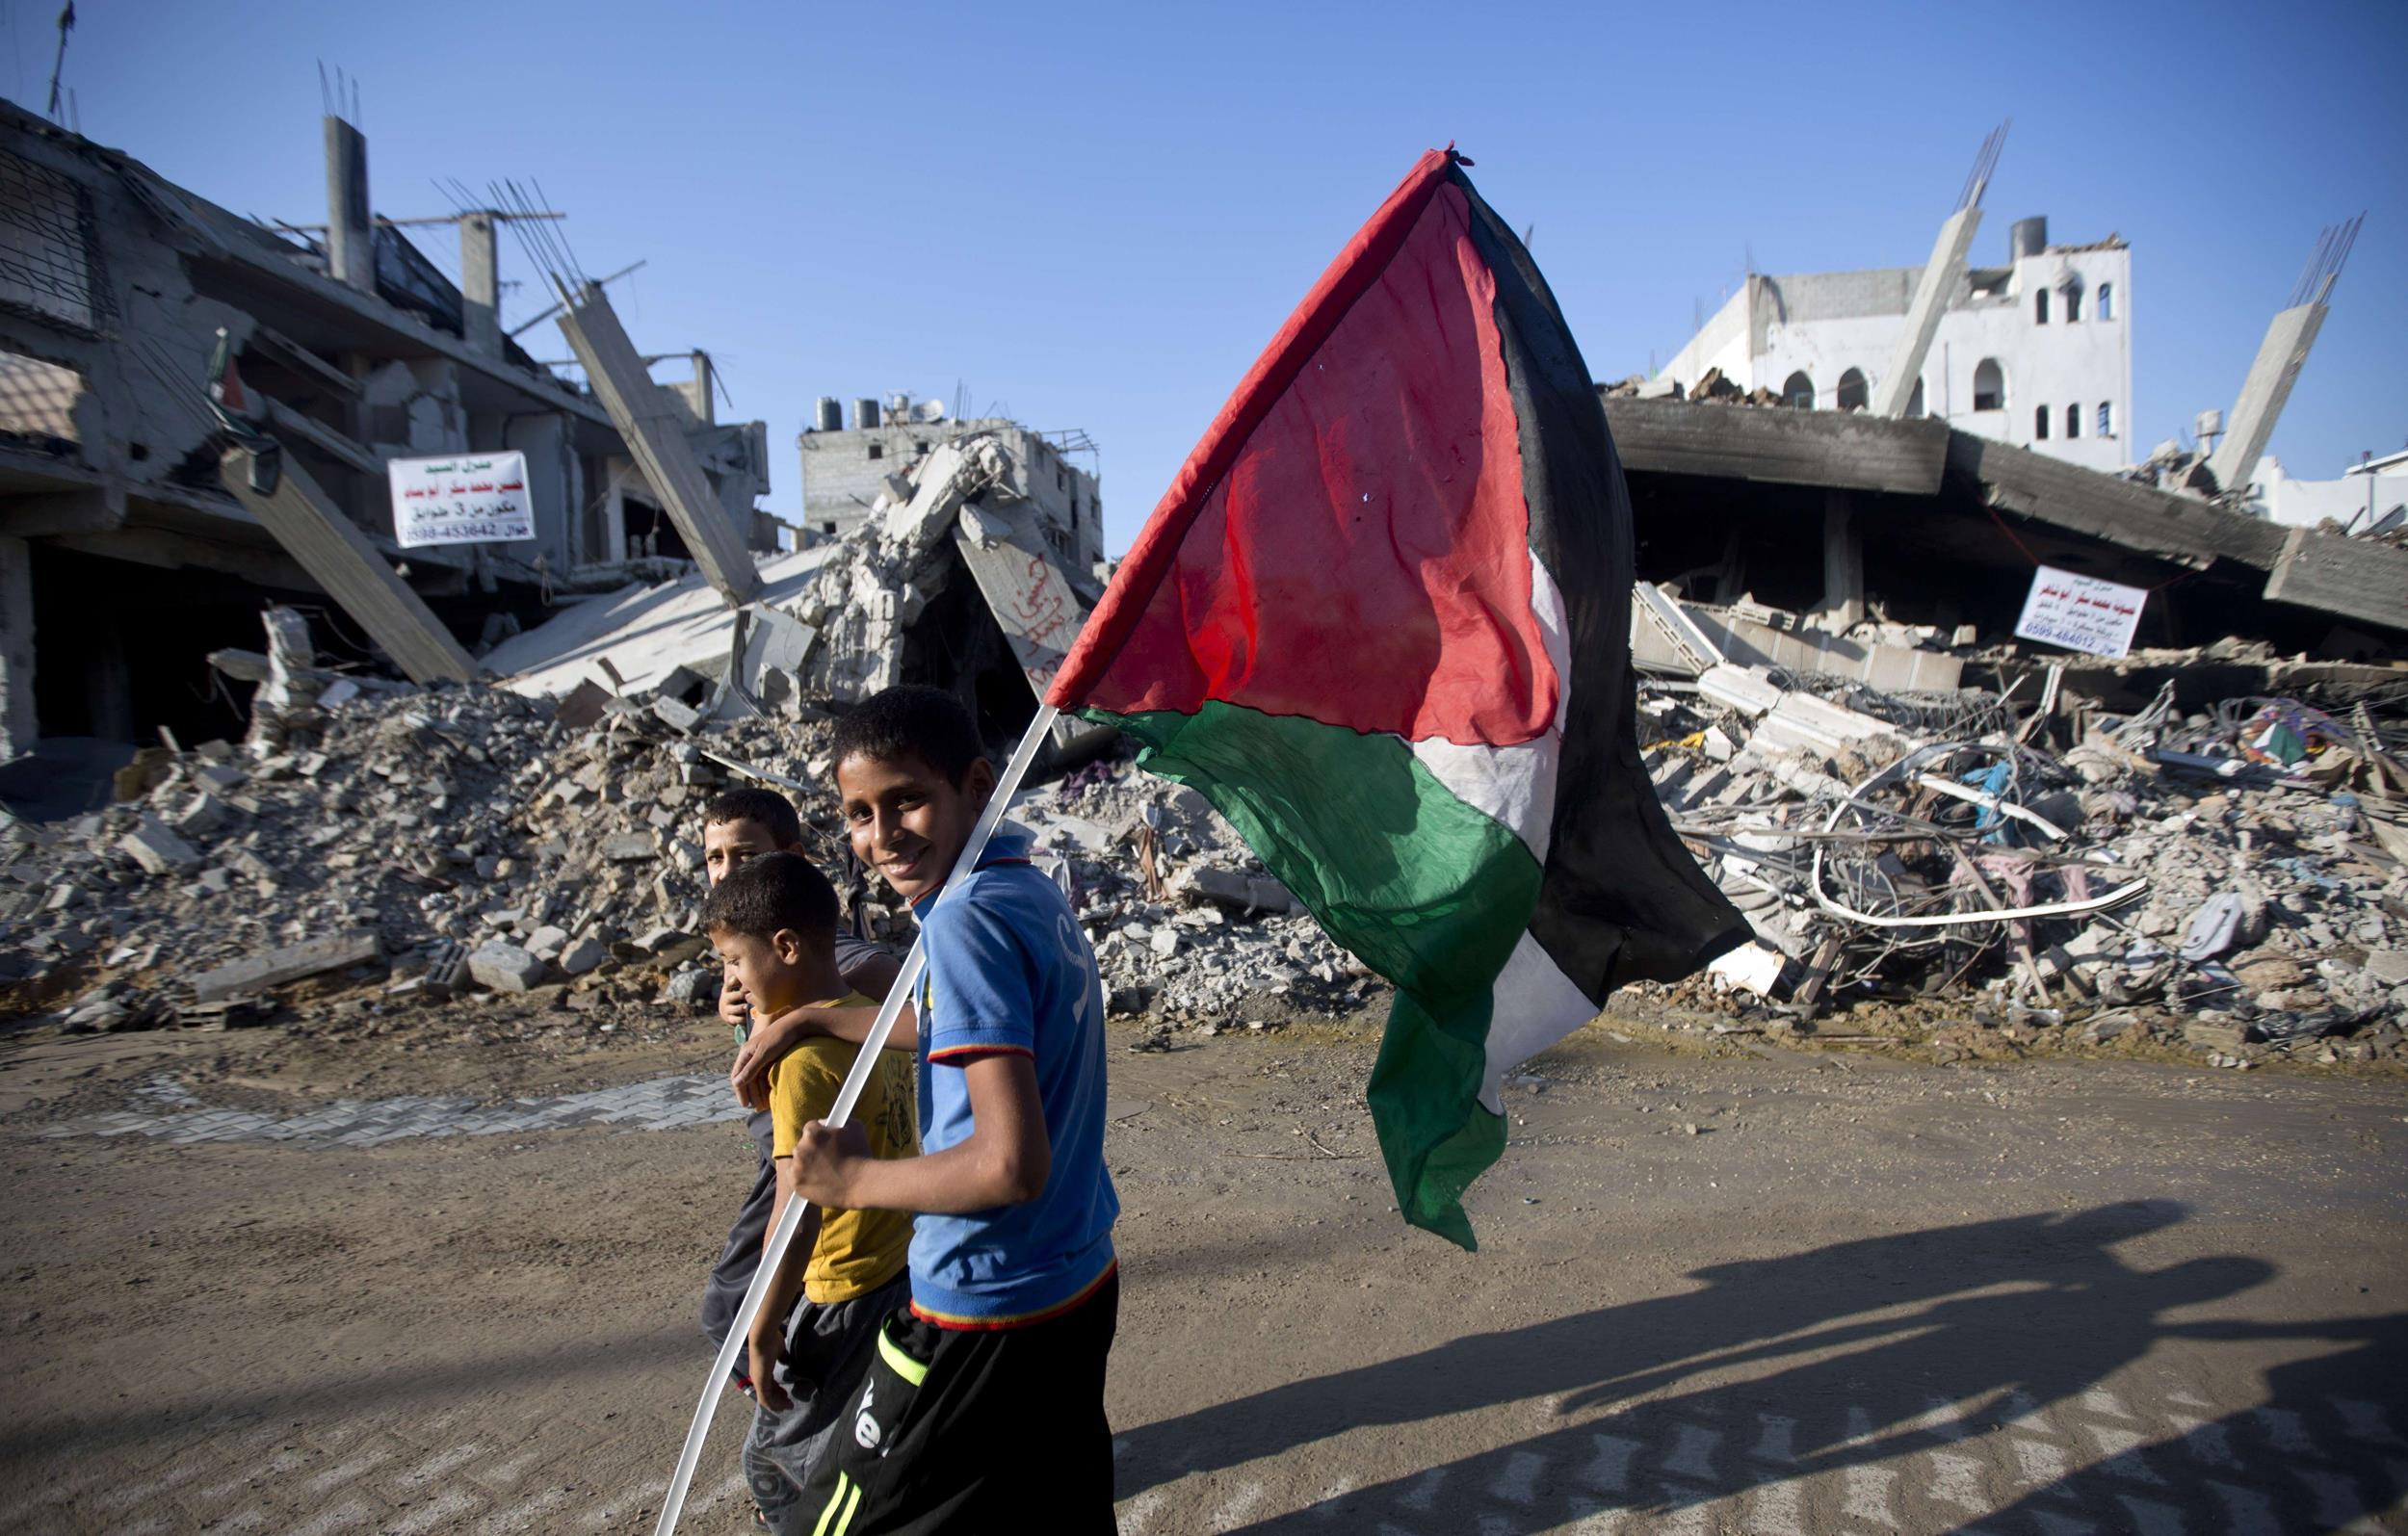 Image: A group of Palestinian boys, one carrying the national flag, walk past destroyed houses in the Shejaiya neighborhood of Gaza City